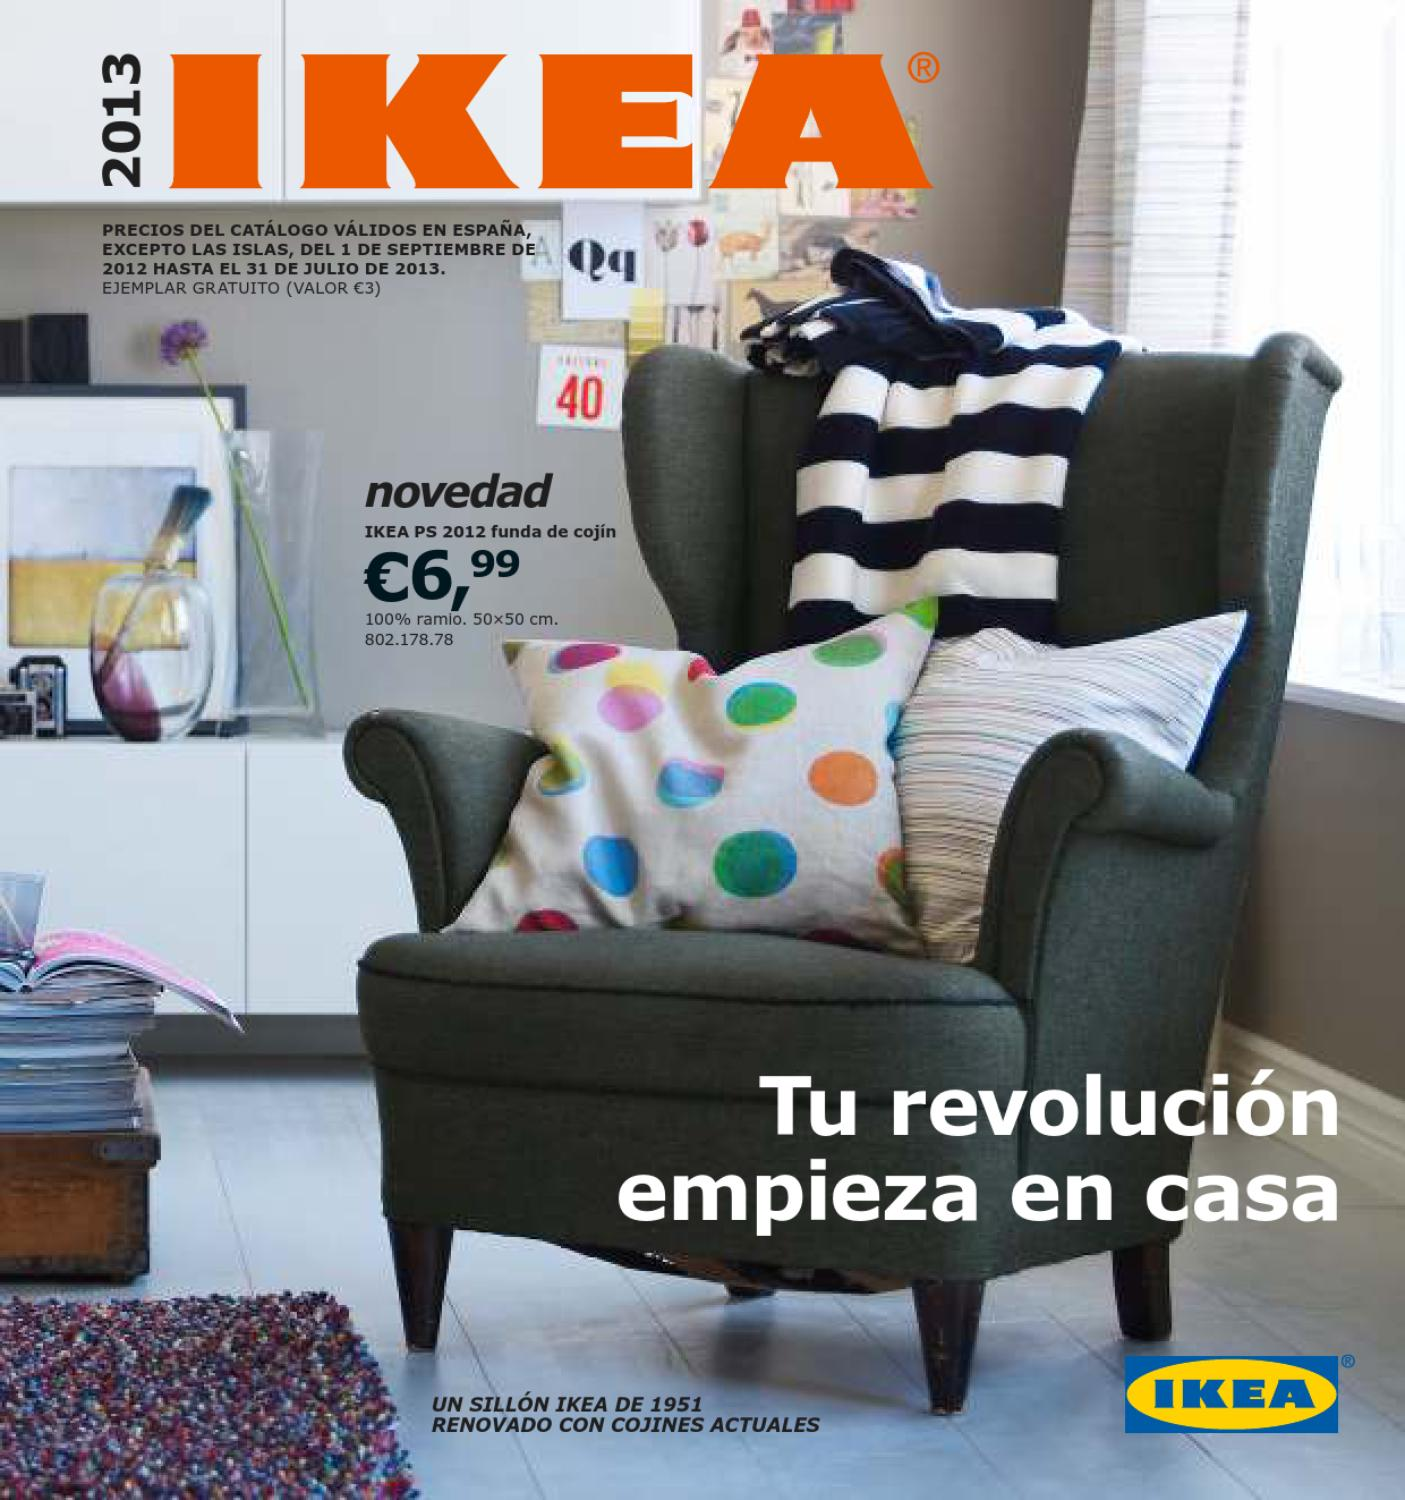 Catalogo ikea 2013 by miguelator issuu - Catalogo ikea 2013 espana ...